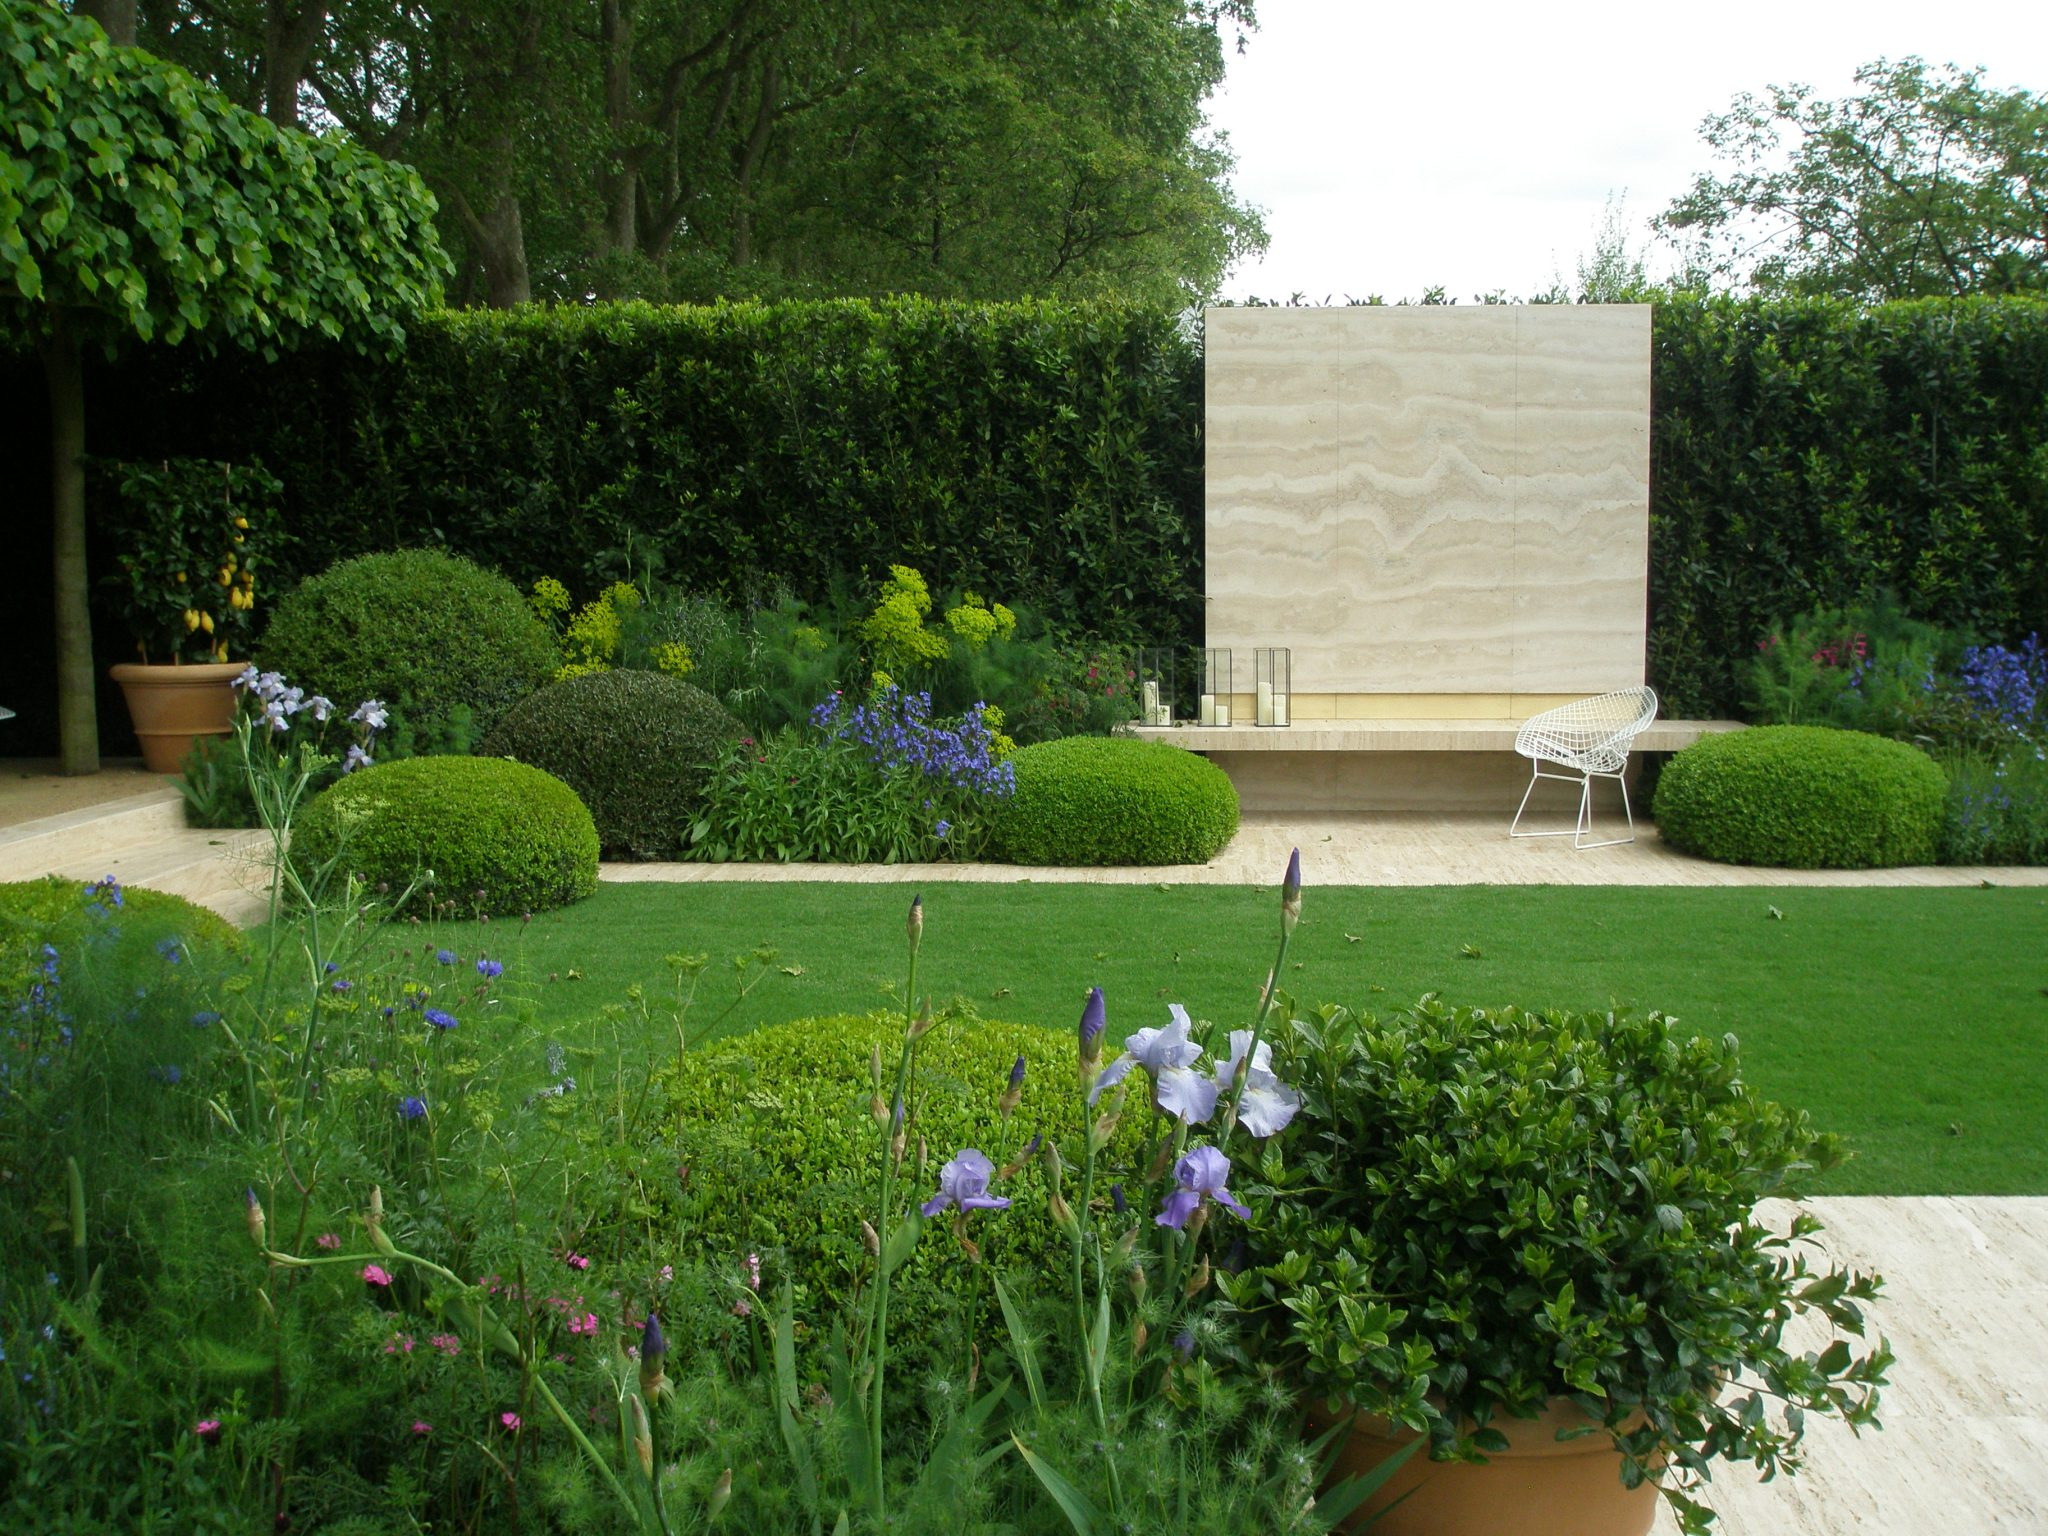 The Daily Telegraph Garden, at the 2014 Chelsea Flower Show. This is just a portion of the elegant space designed by Tommaso del Buono and Paul Gazerwitz. Tommaso grew up in Florence, and Paul in New York, and together they have an international practice, based in Shoreditch, East London. Here, a giant panel of Nocino Travertine Limestone punctuates a tall, green hedge. Low topiaries, pruned into pincushion shapes, flank a bench that floats in front of the limestone.